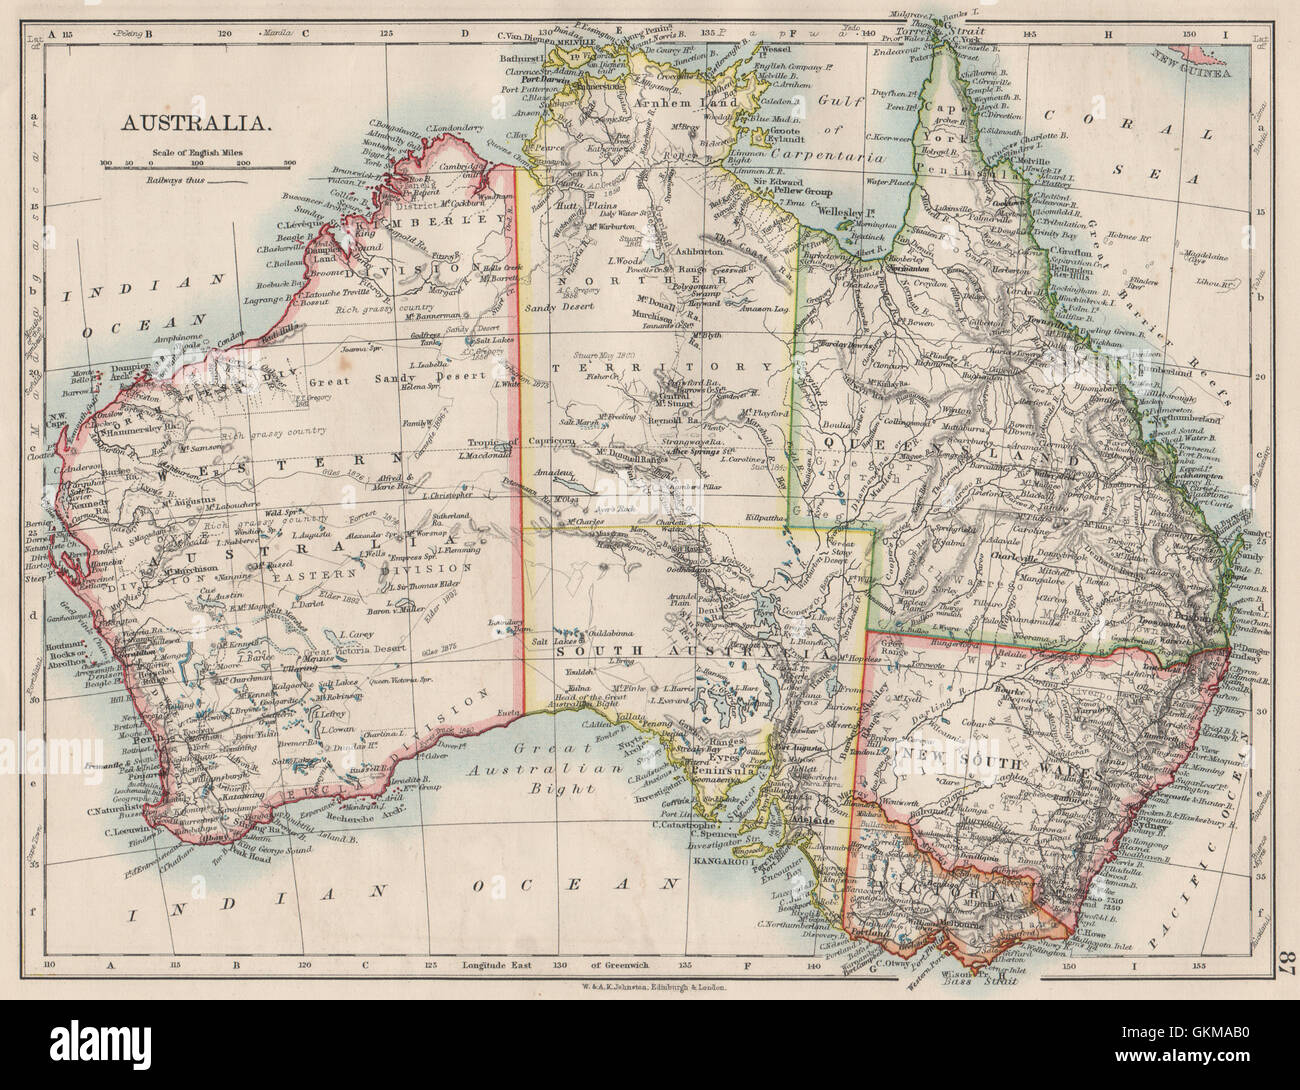 Australia Map 1900.Australia States Showing Northern Territory Within Sa